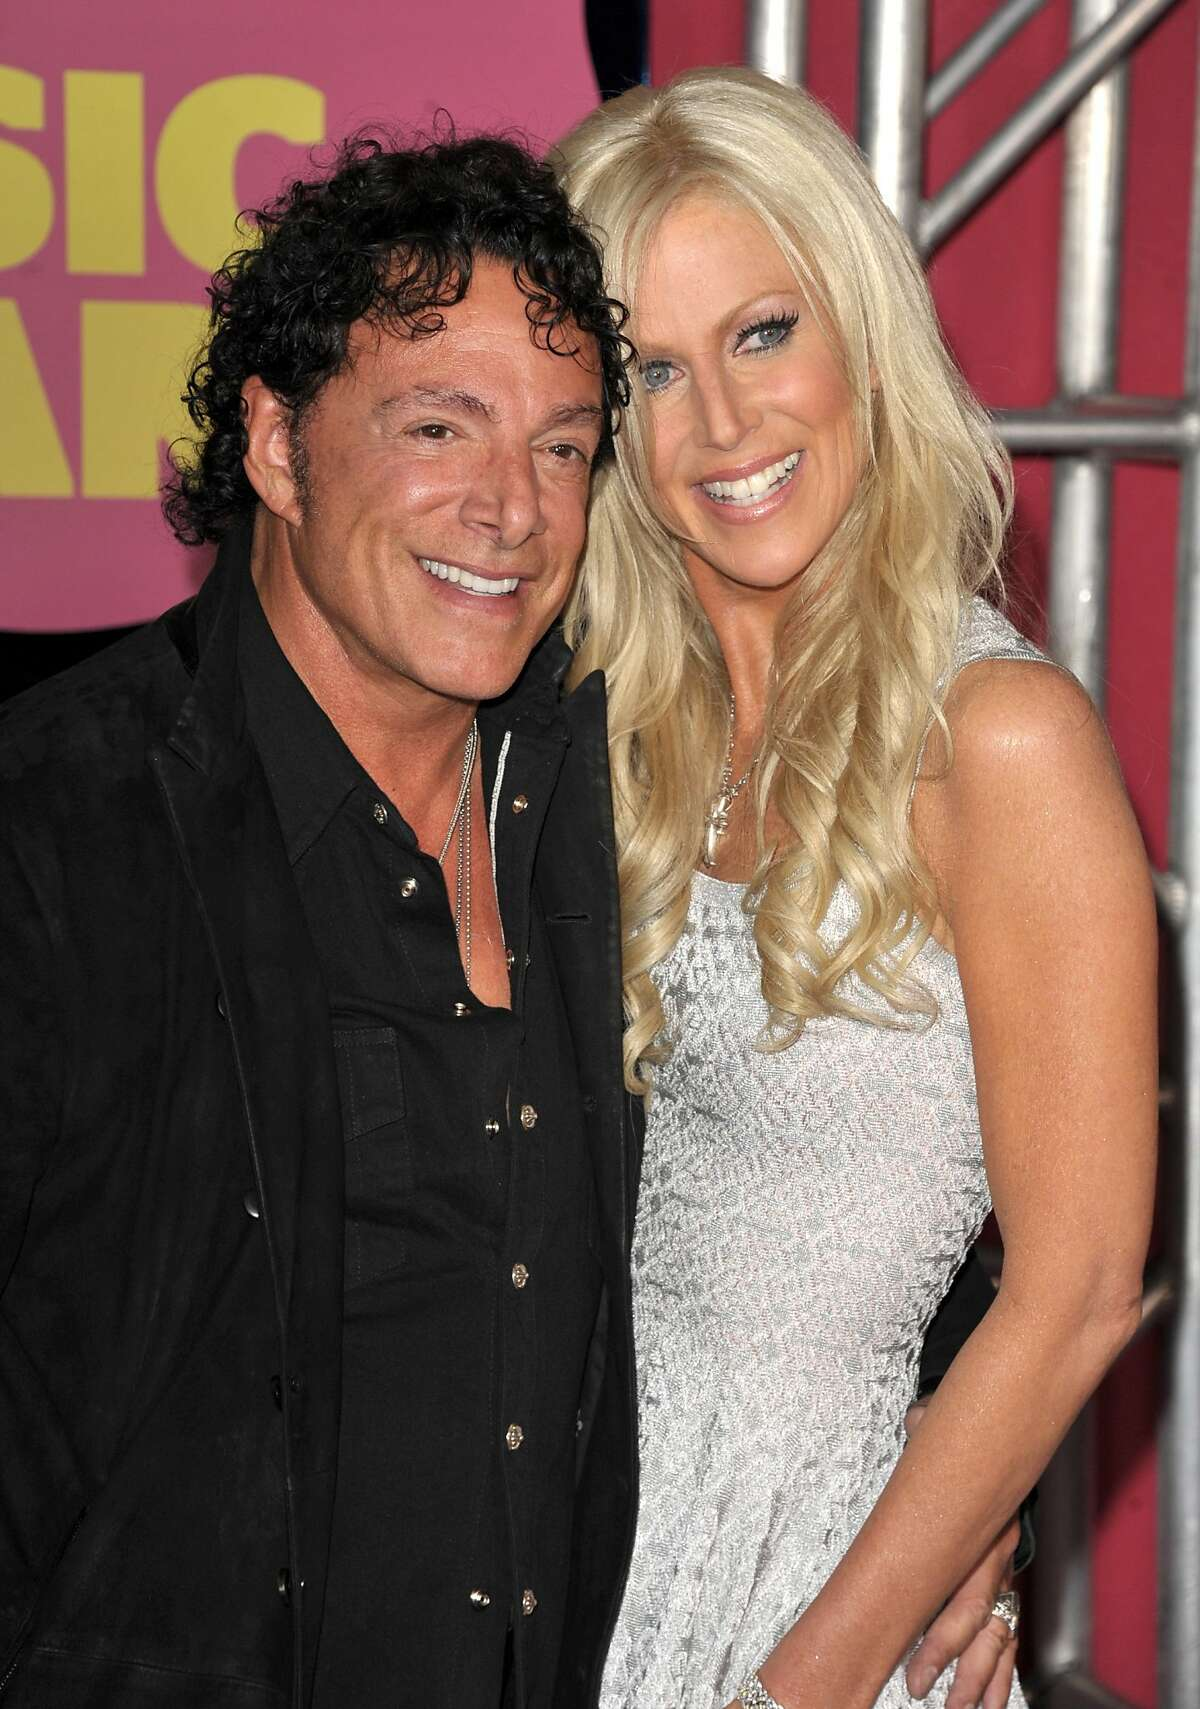 FILE - In this June 6, 2012, file photo, Neal Schon, left, and Michaele Salahi arrive at the CMT Music Awards in Nashville, Tenn. Schon, the lead guitarist and founder of the iconic San Francisco rock band Journey, sued the city Friday, Feb. 6, 2015, over a $240,000 fee to use a city landmark for his lavish wedding to former reality television star Salahi. Schon complains in his federal lawsuit that San Francisco officials unfairly jacked up the fee for the city's permit six days before the wedding after learning the couple planned to broadcast the event as a pay-per-view television show. (Photo by John Shearer/Invision/AP File)